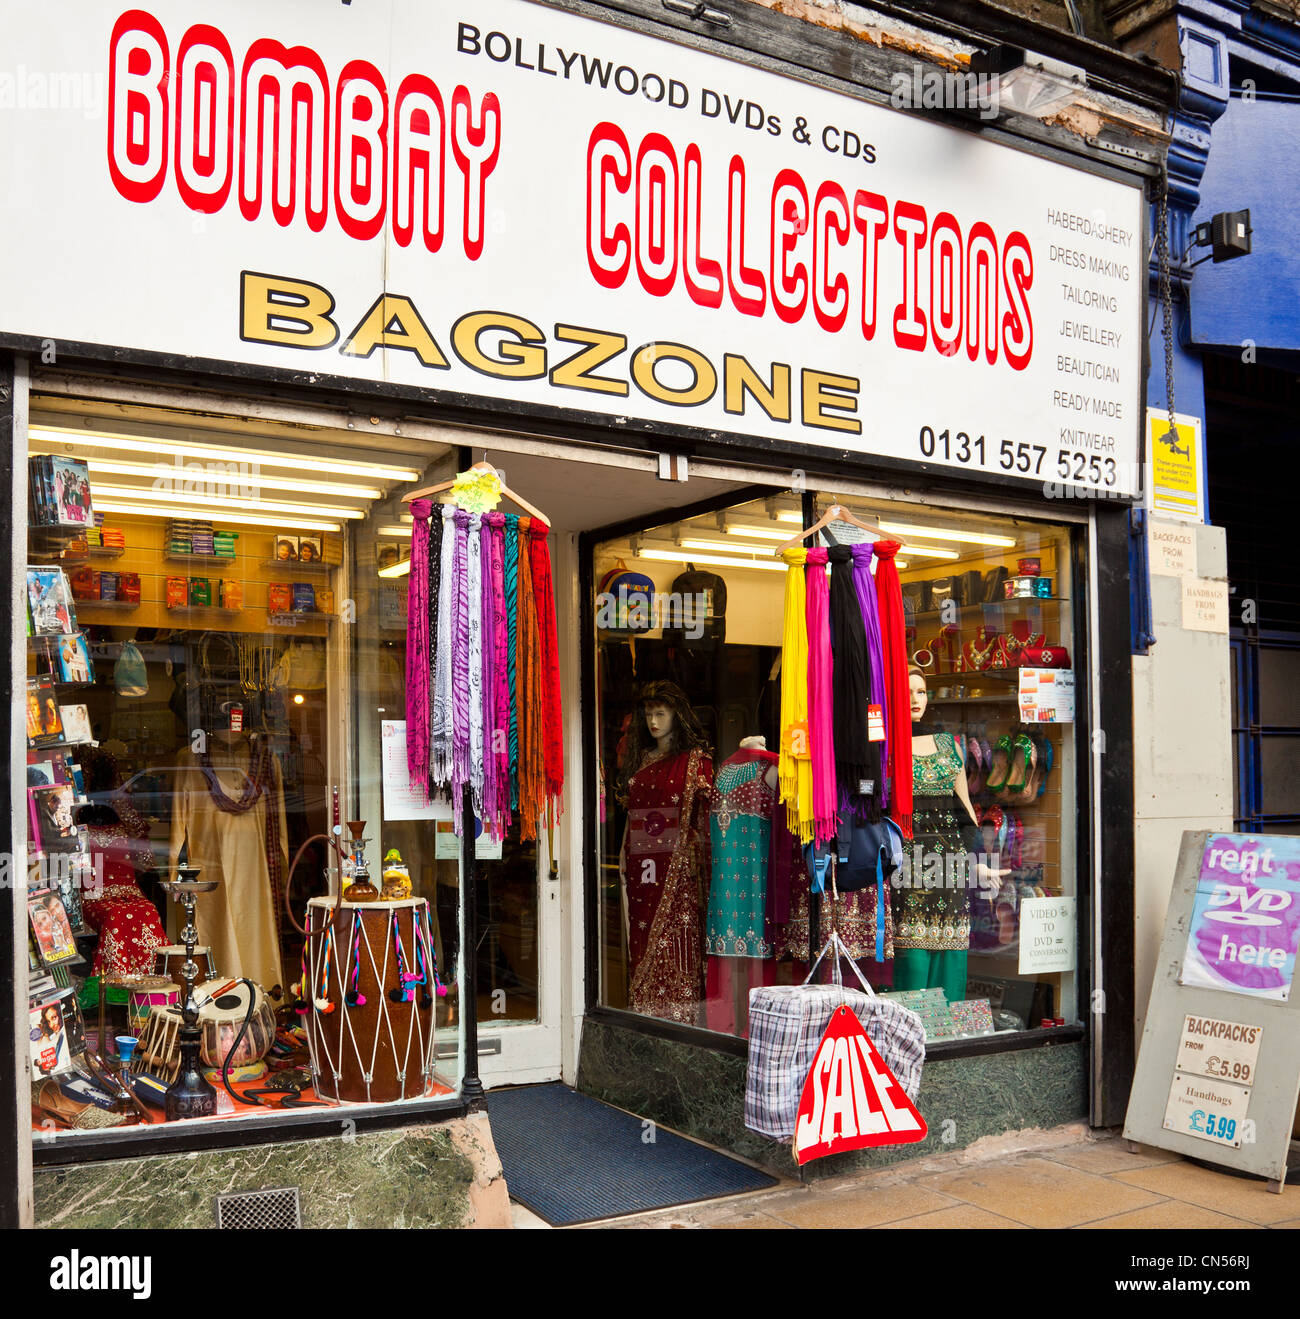 Frontage & entrance to Bombay Collections shop specialising in clothes and other items from the Indian Subcontinent. - Stock Image